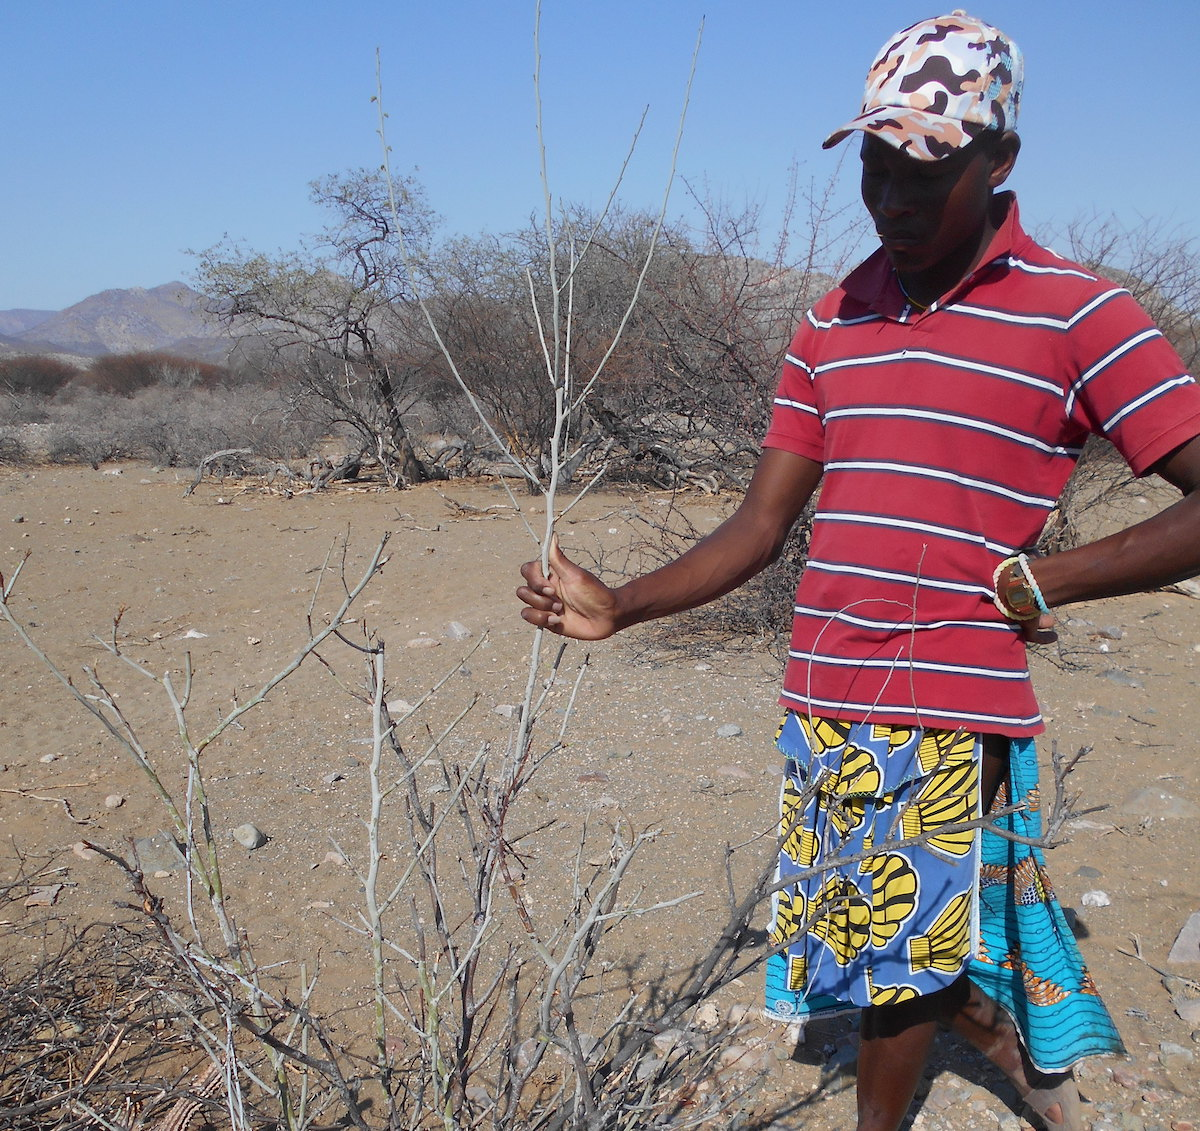 Para ecologist identifying plant (Adenolobus garipensis) and talking about it. The plant is named  Omukandakanda in Himba and Curoca language